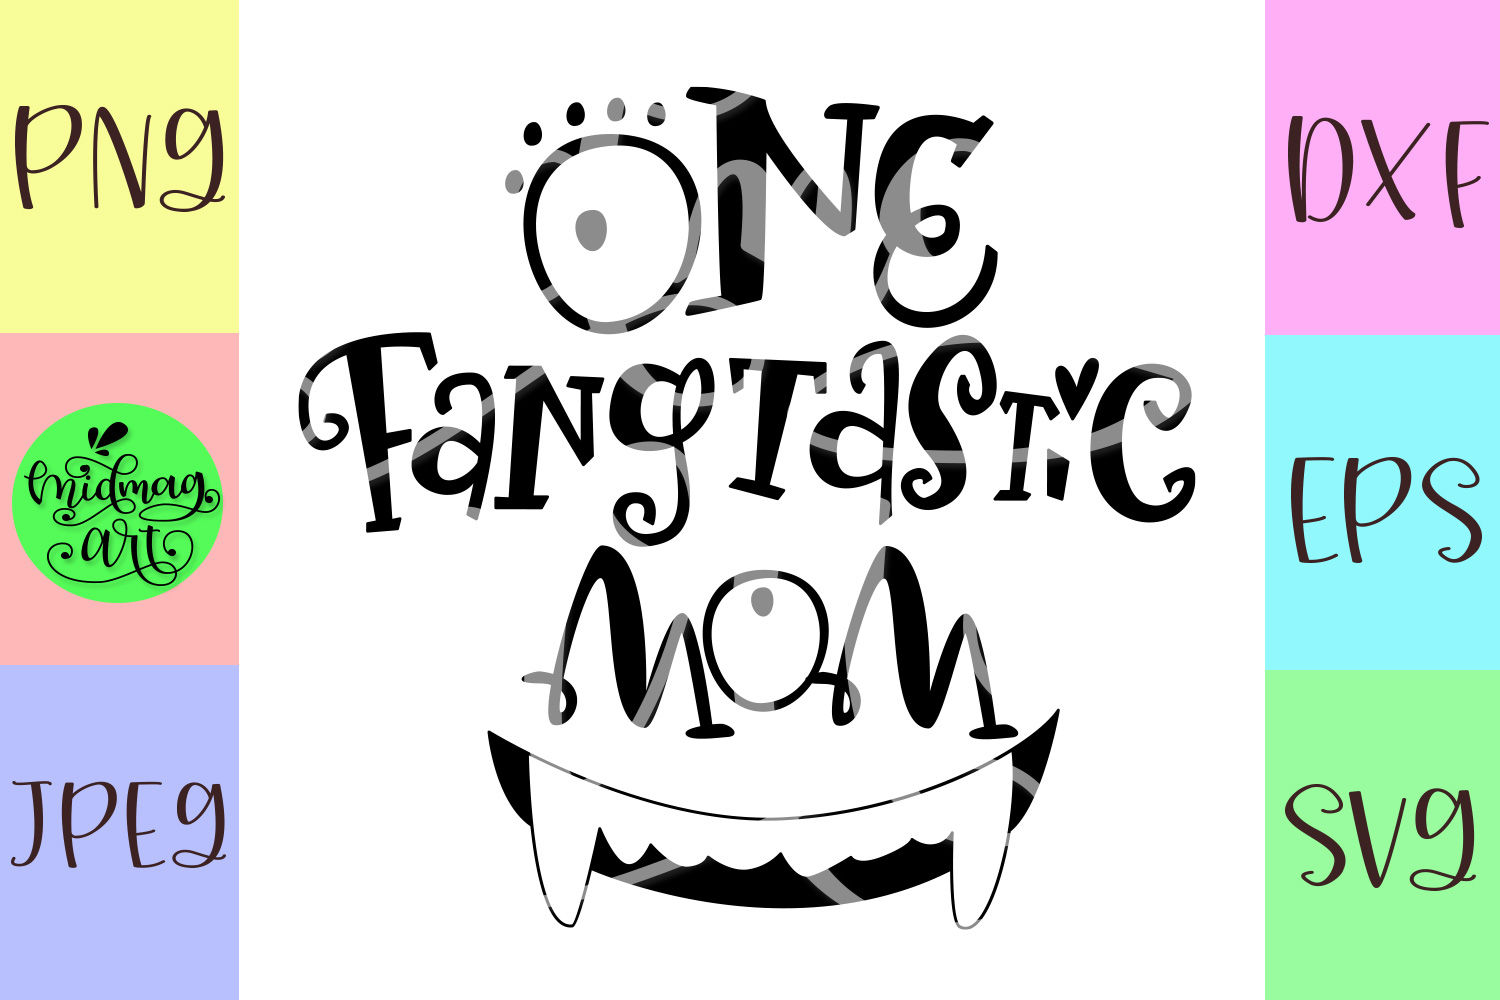 One fangtastic mom svg, mom halloween svg example image 2